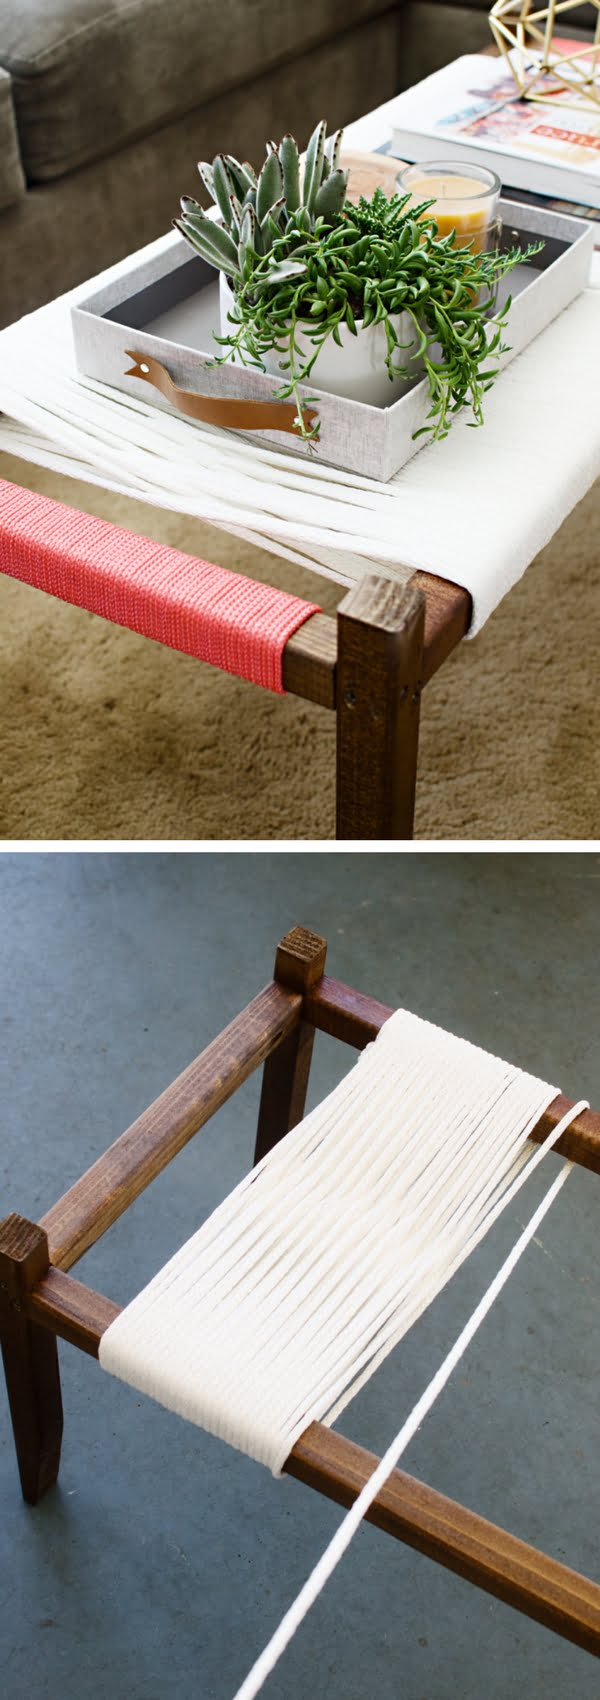 Check out the tutorial on how to make a DIY woven bench